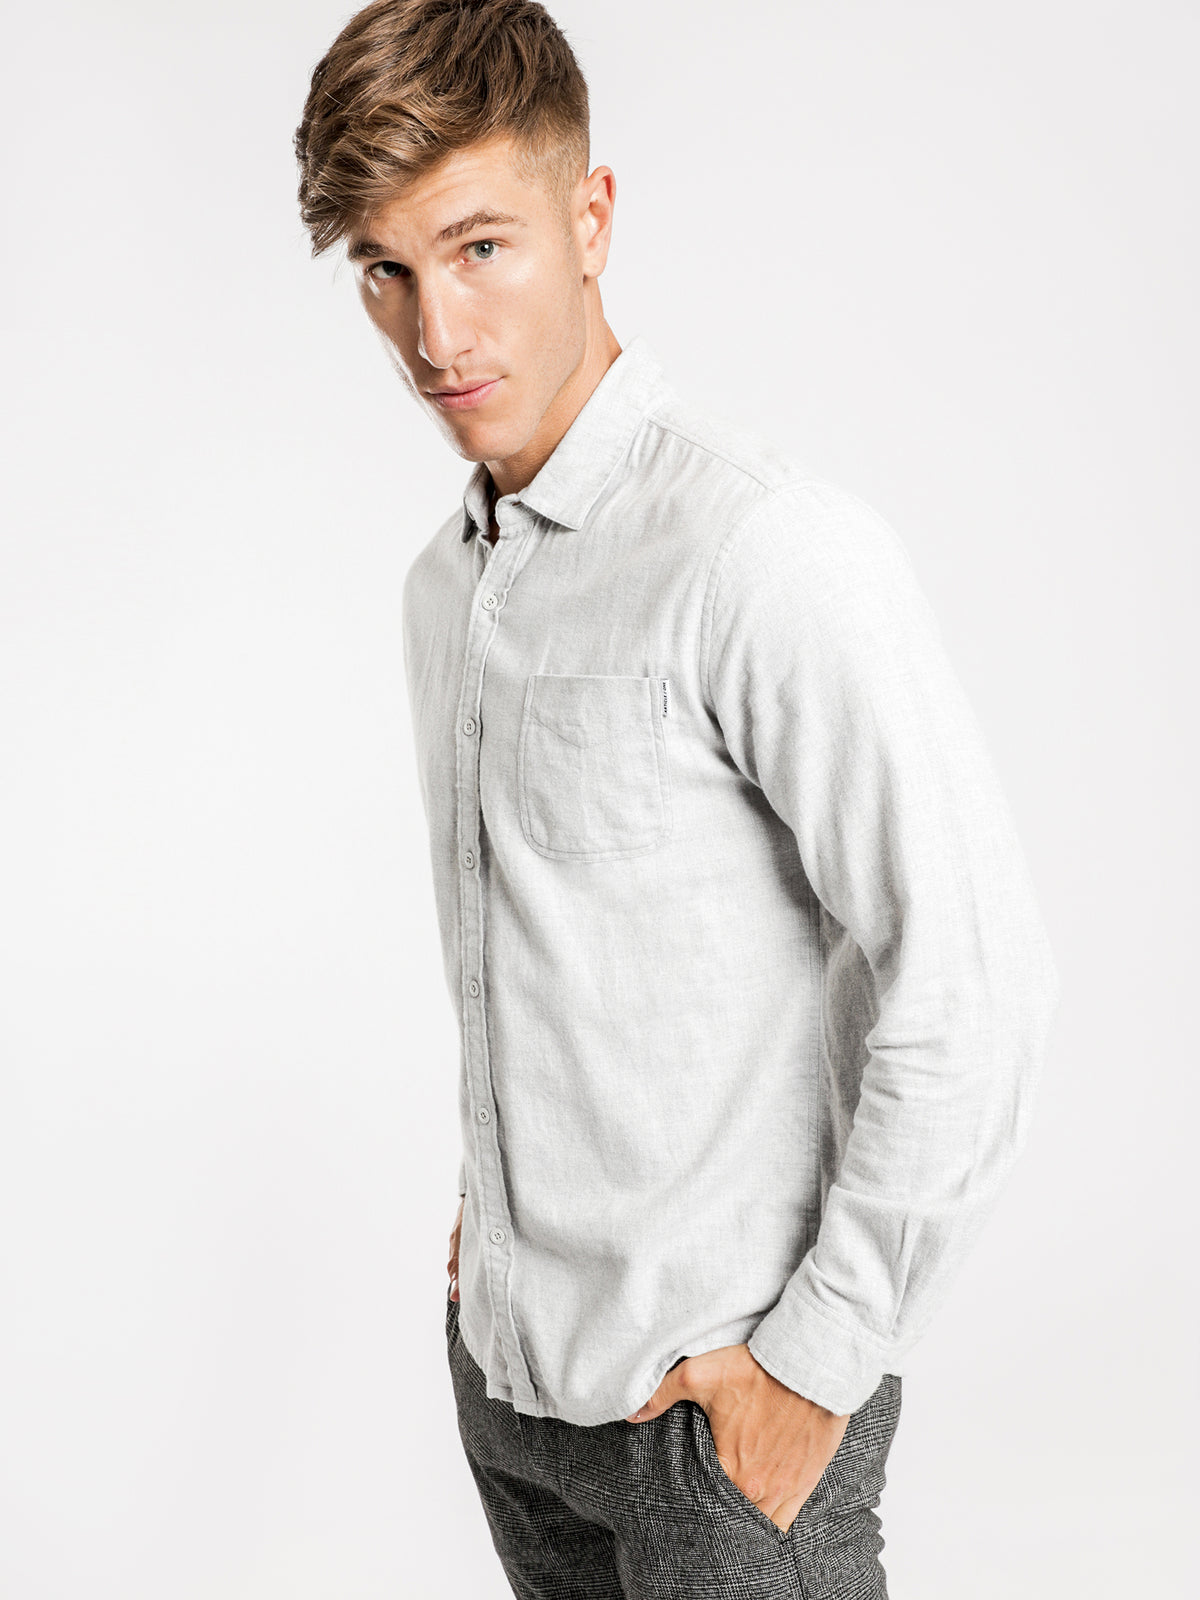 Ryker Flannel Long Sleeve Shirt in Snow Marle